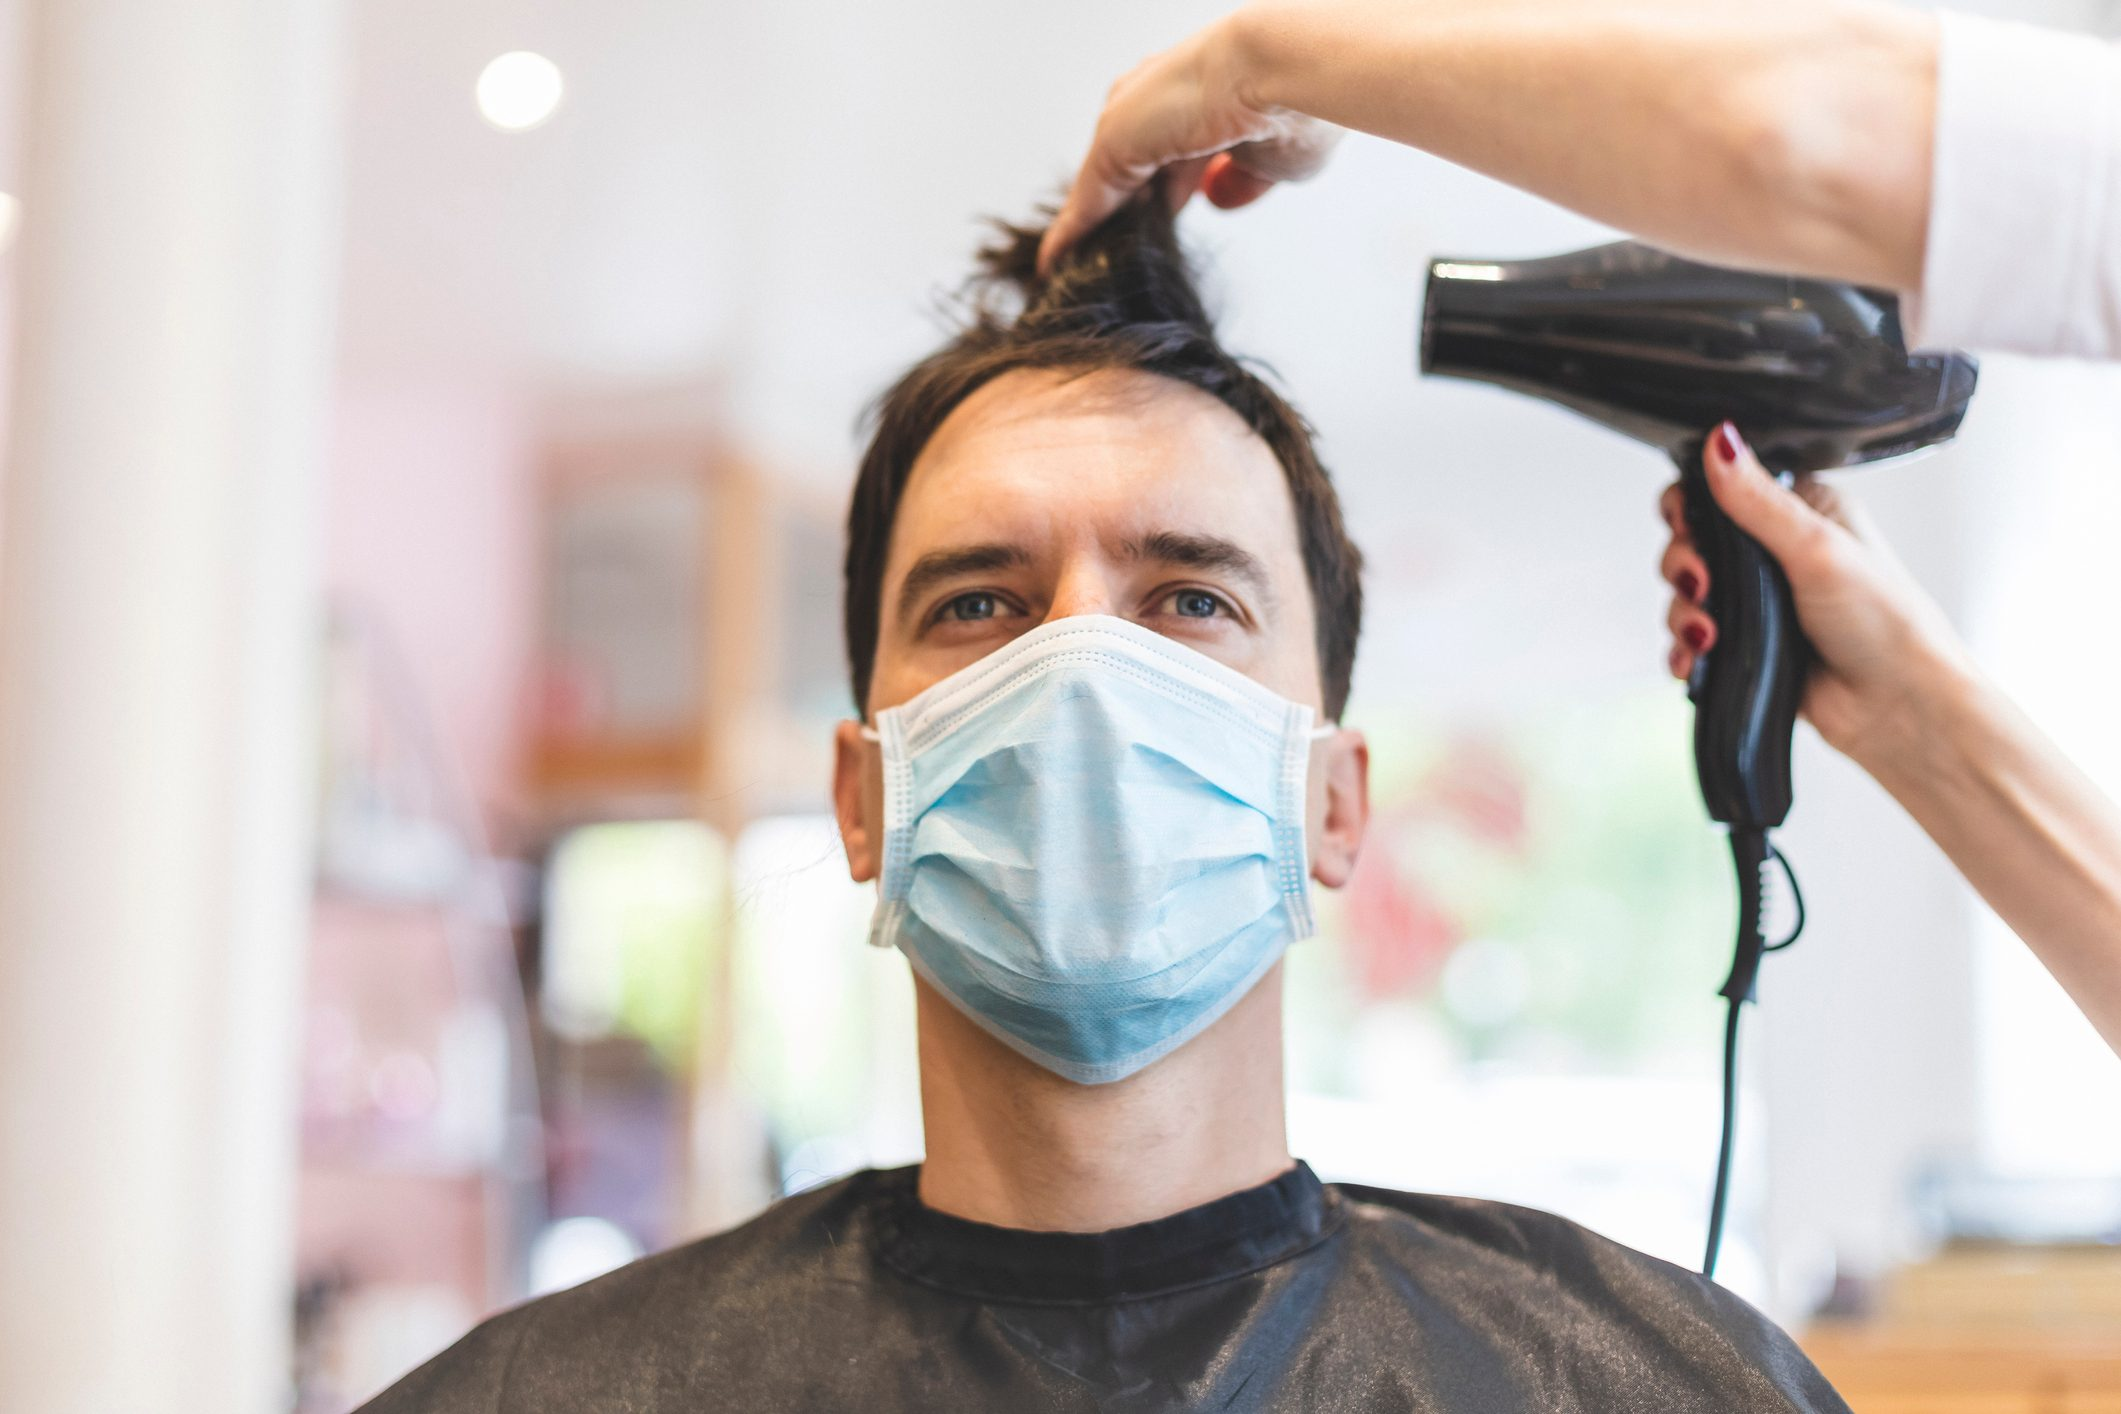 Hairdresser Drying Hair of Customer Wearing Protective Mask